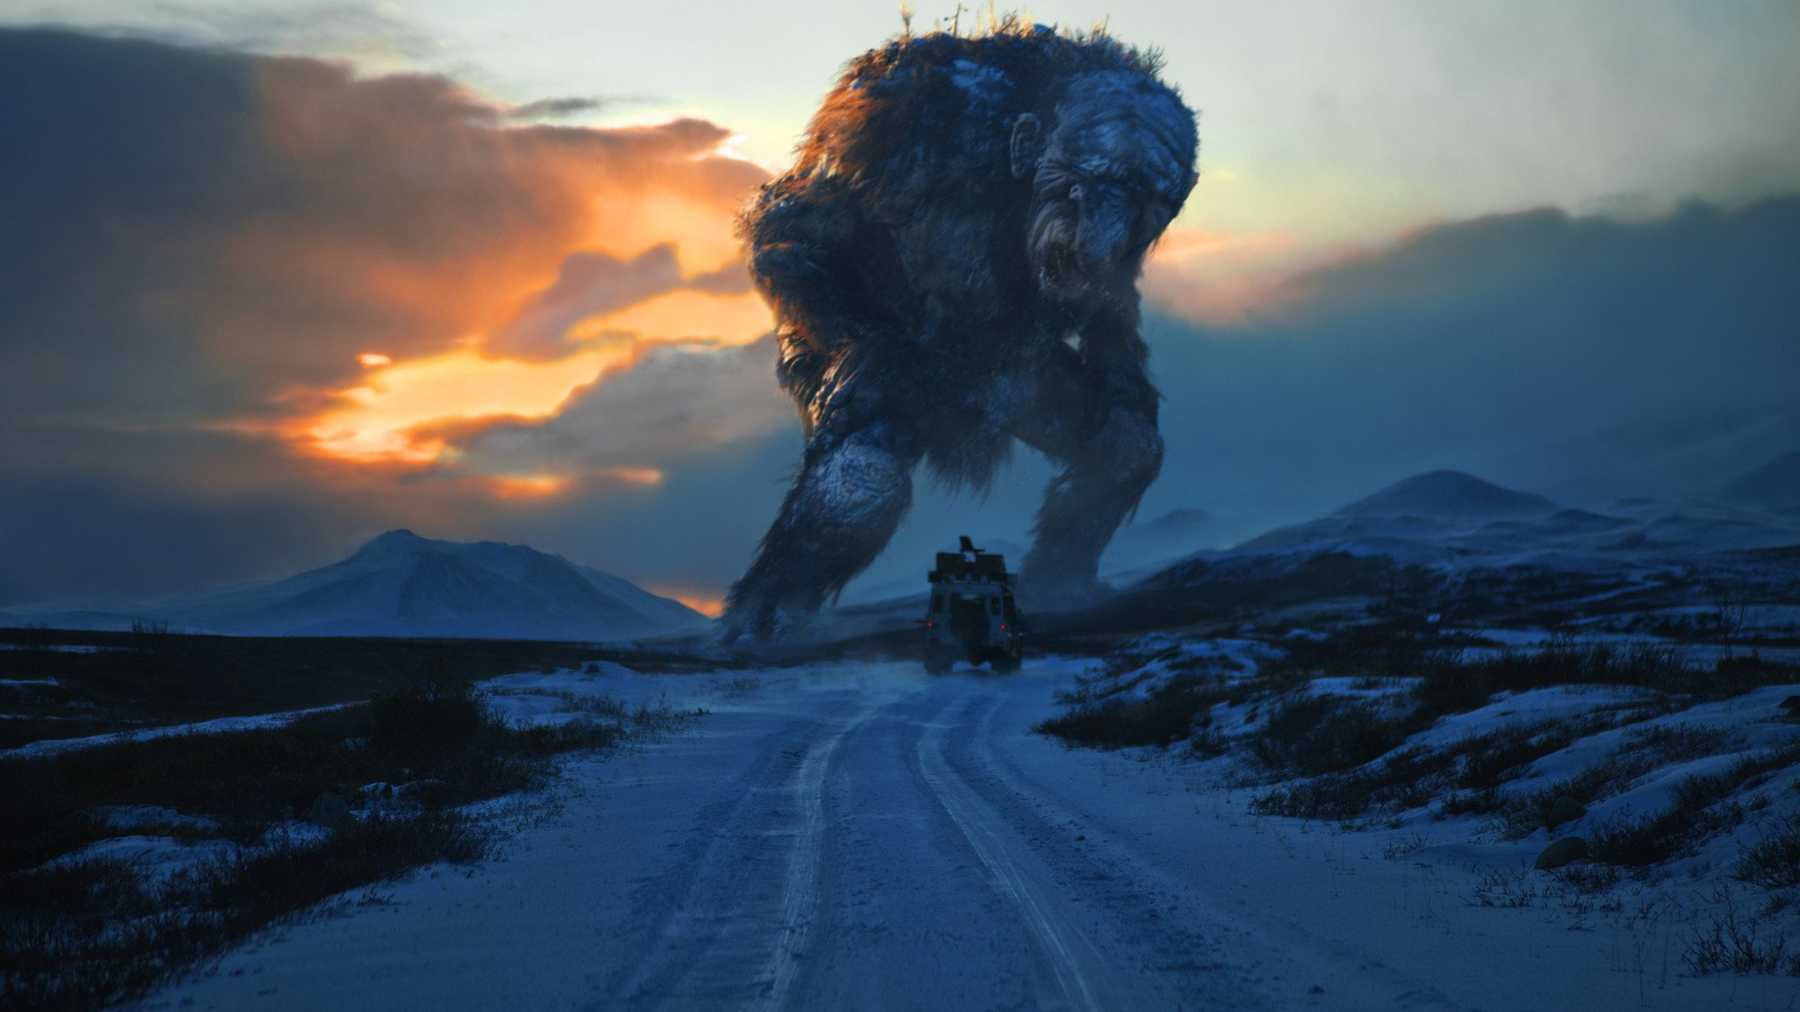 Hans drives his Land Rover along the road in the direction of the gigantic Jotnar